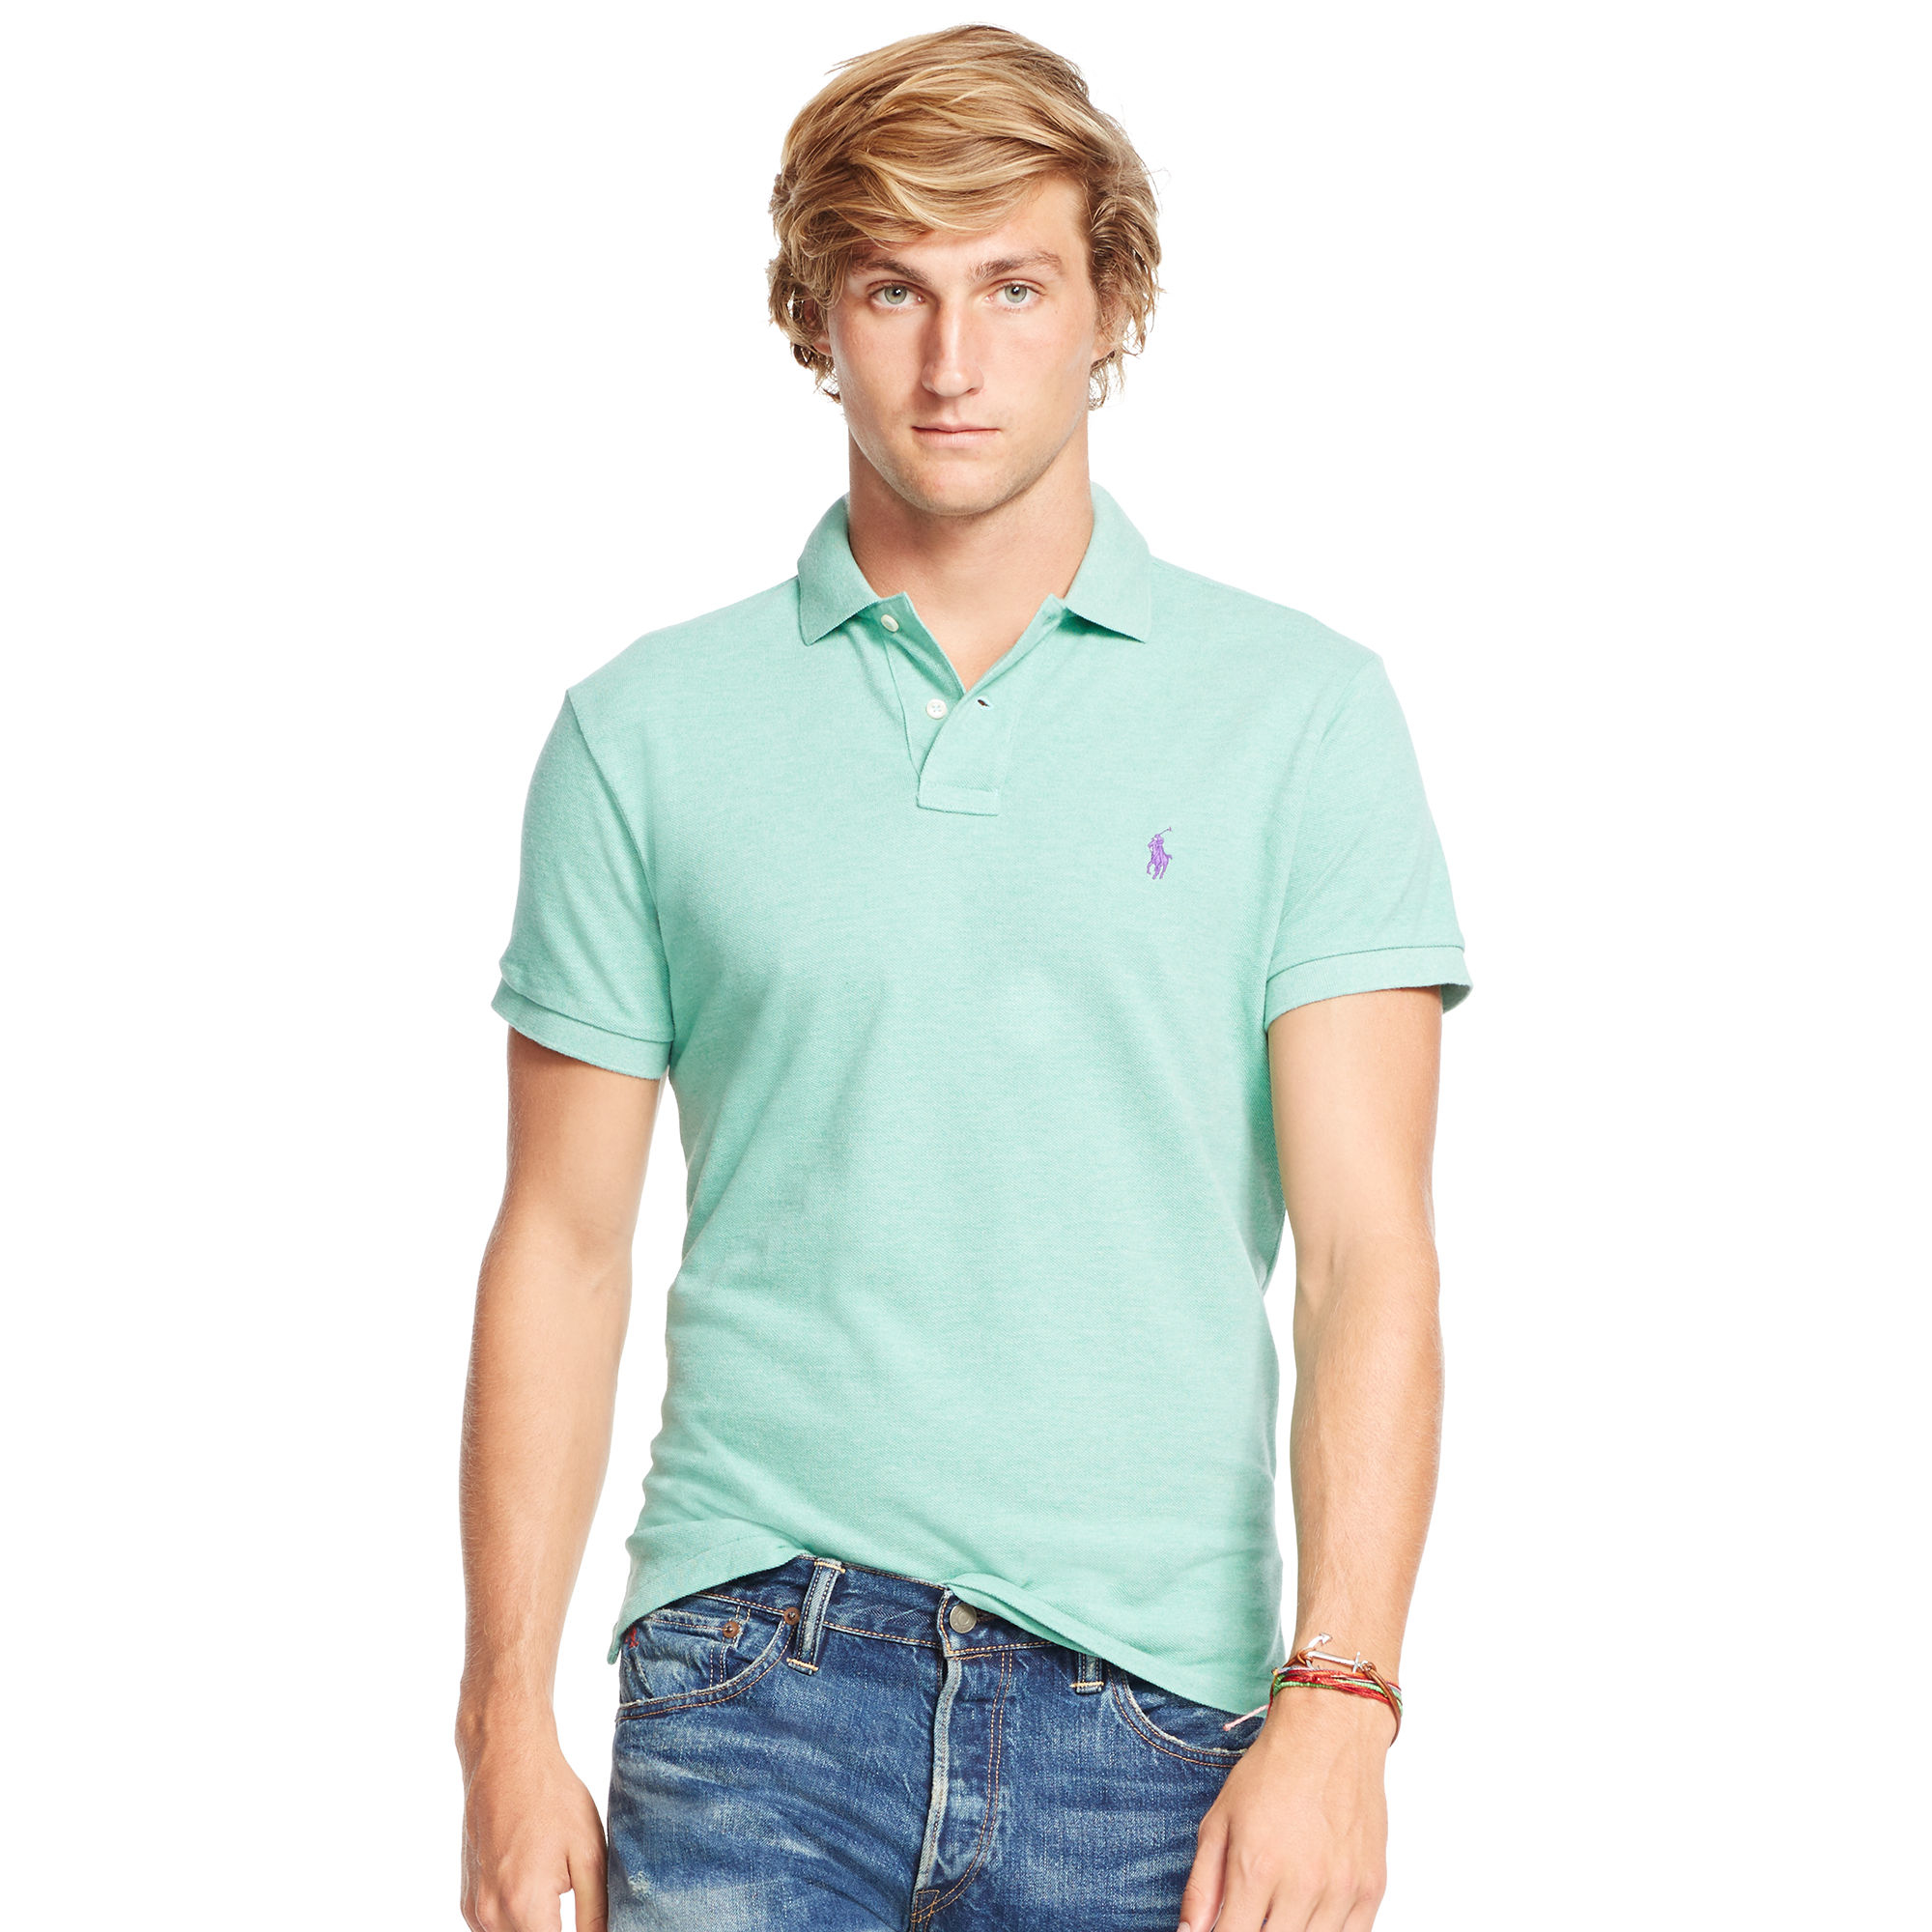 Polo ralph lauren custom fit mesh polo shirt in blue for for Custom polo shirts canada